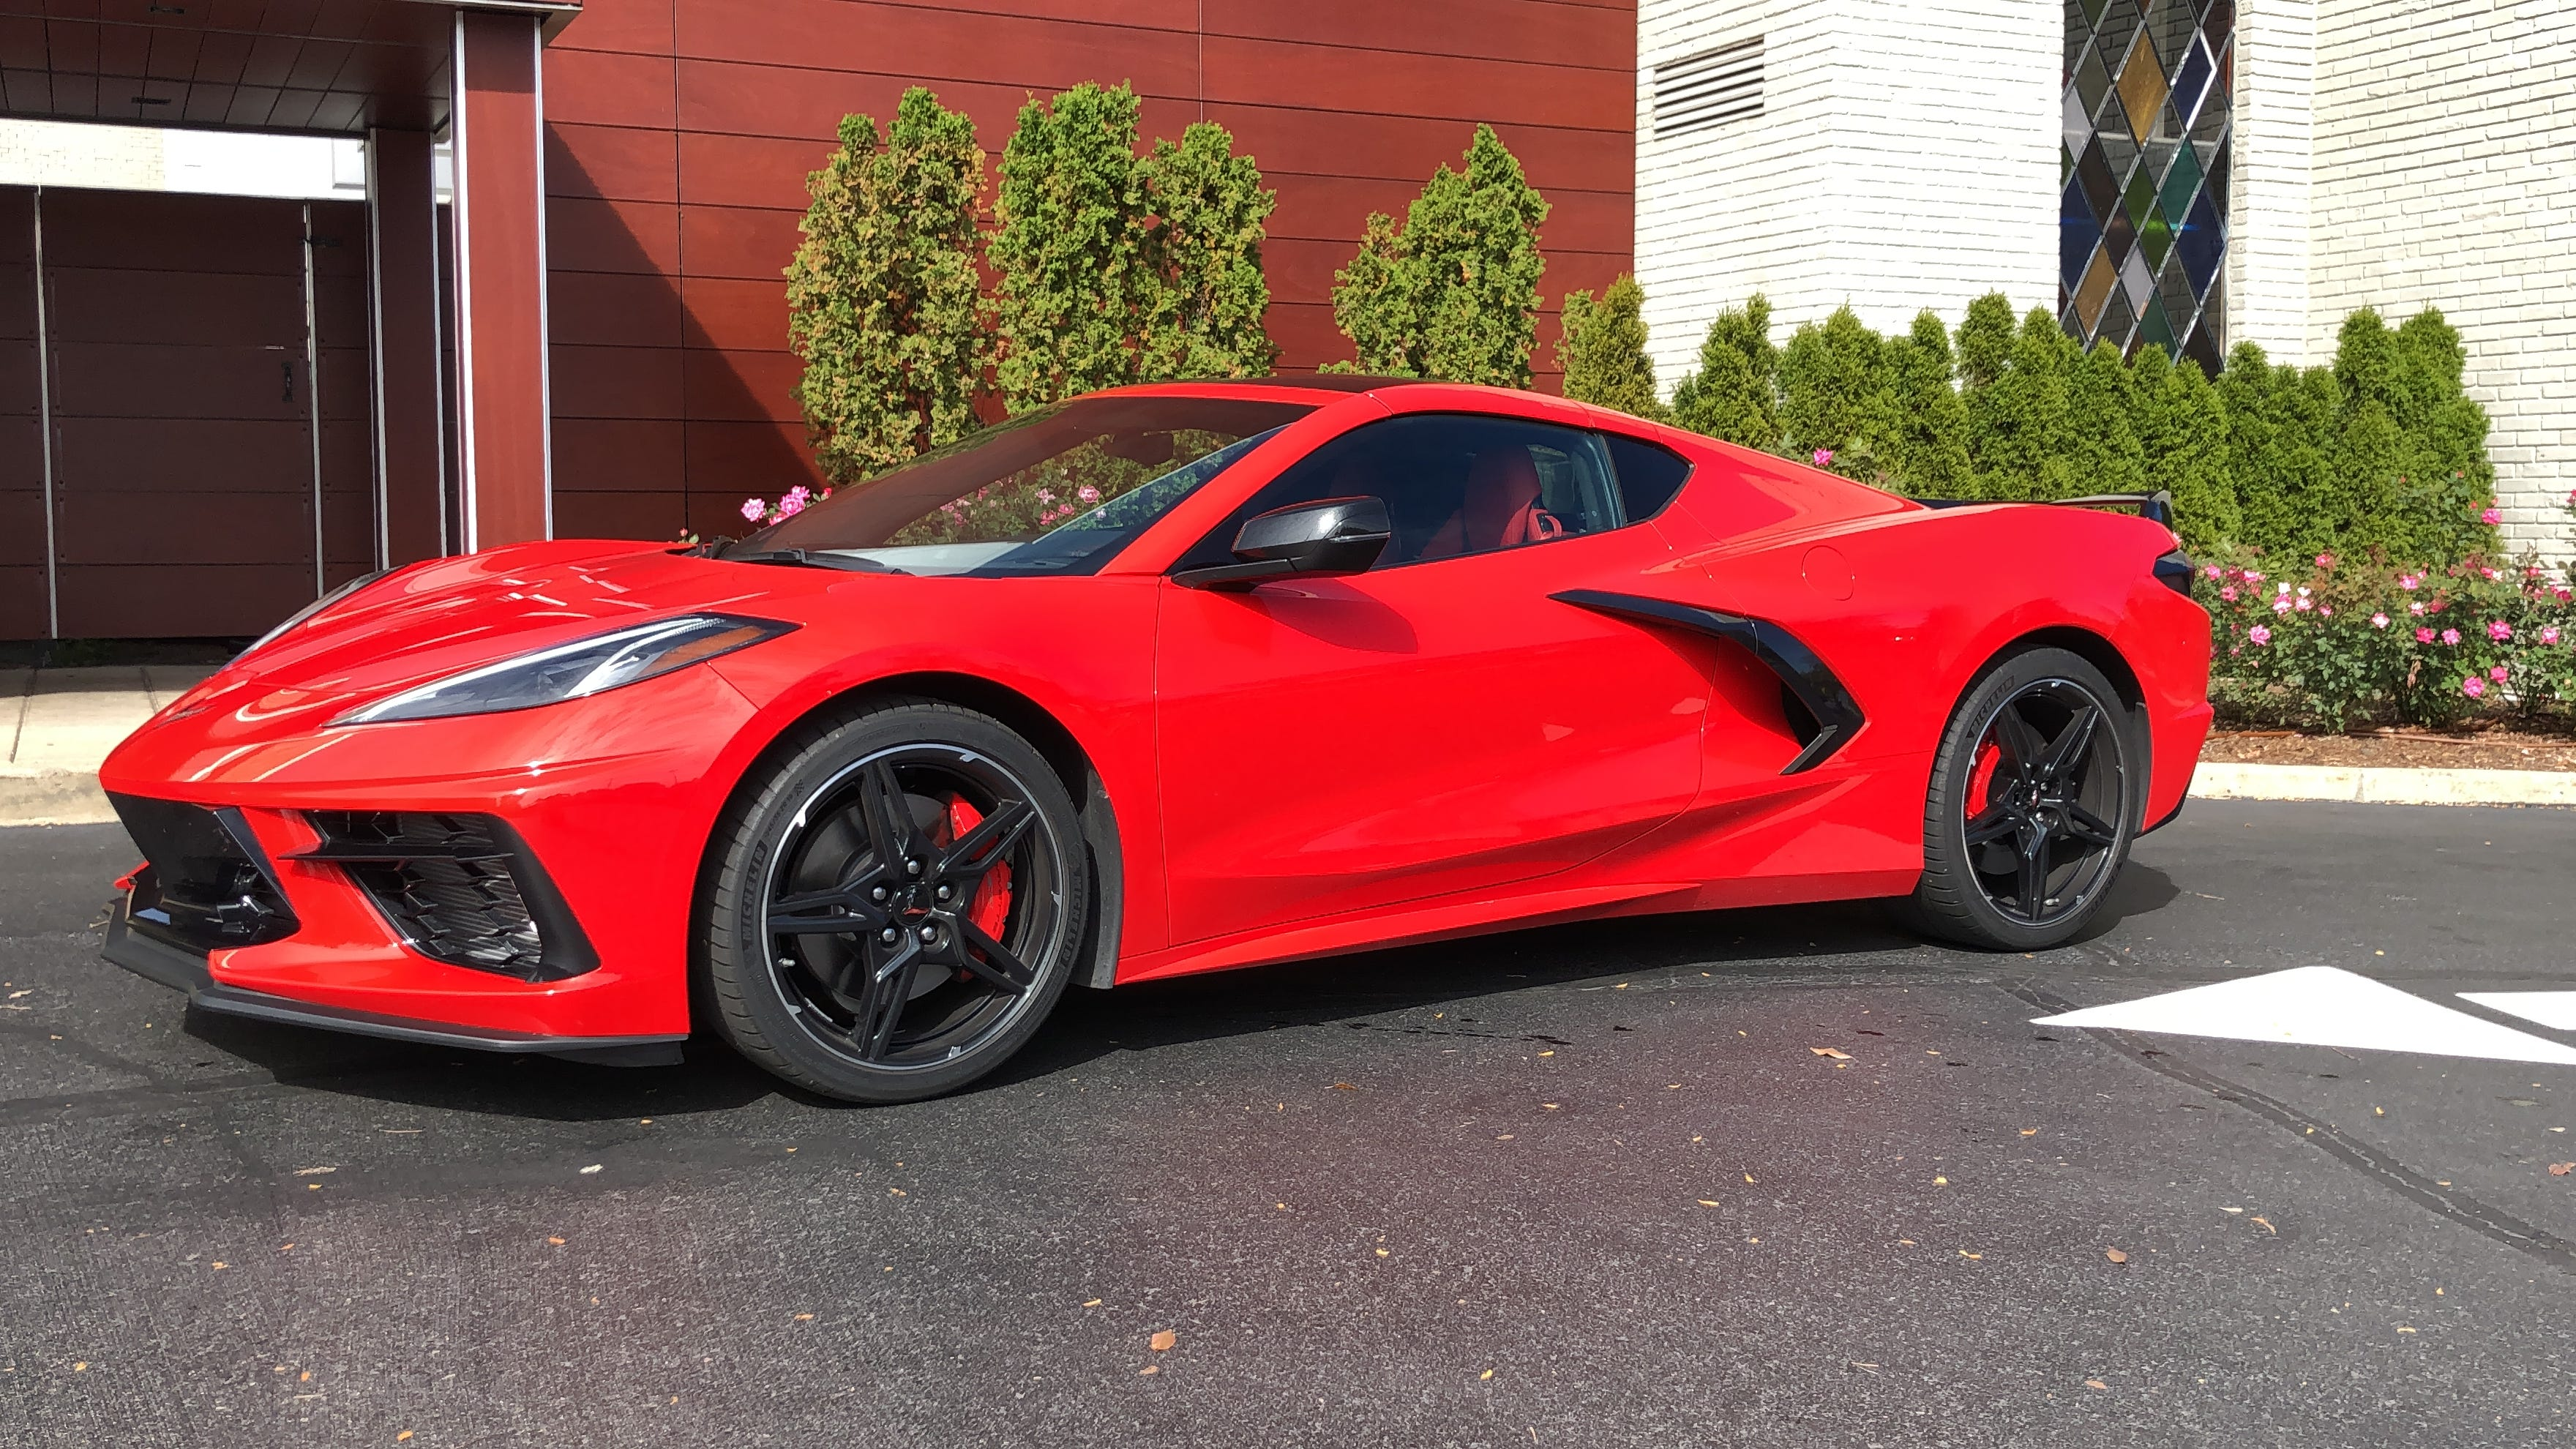 New Corvette 2020.2020 Chevrolet Corvette Stingray Is Blisteringly Fast